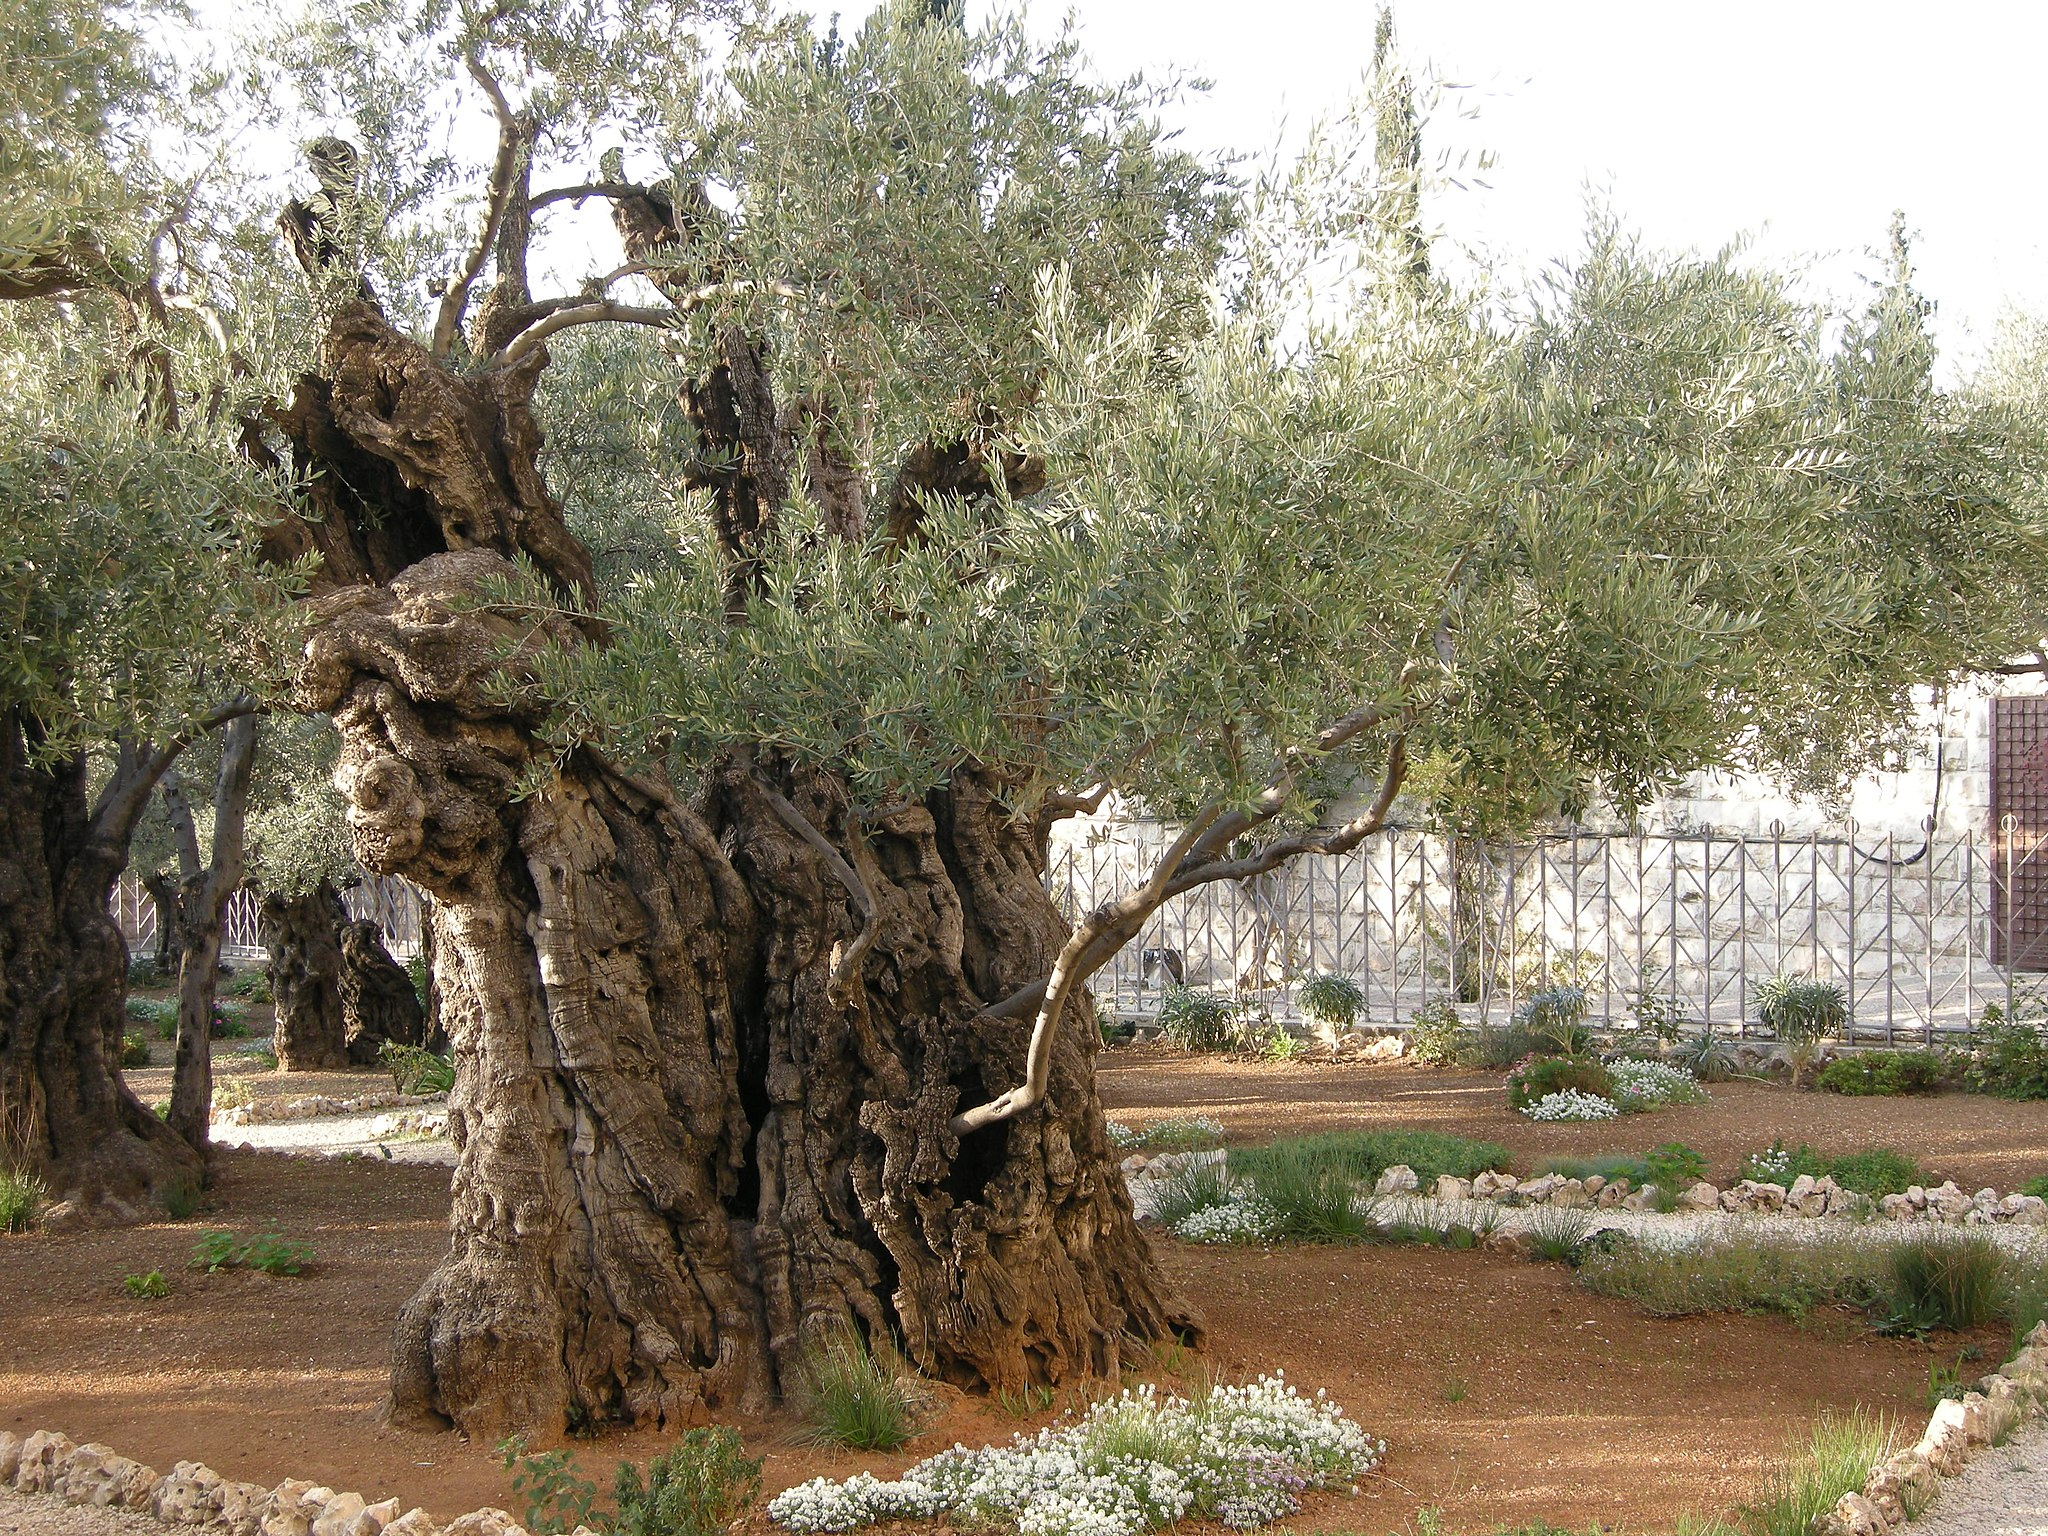 The Biblical Olive Trees – The Garden of Gethsemane | The Treeographer